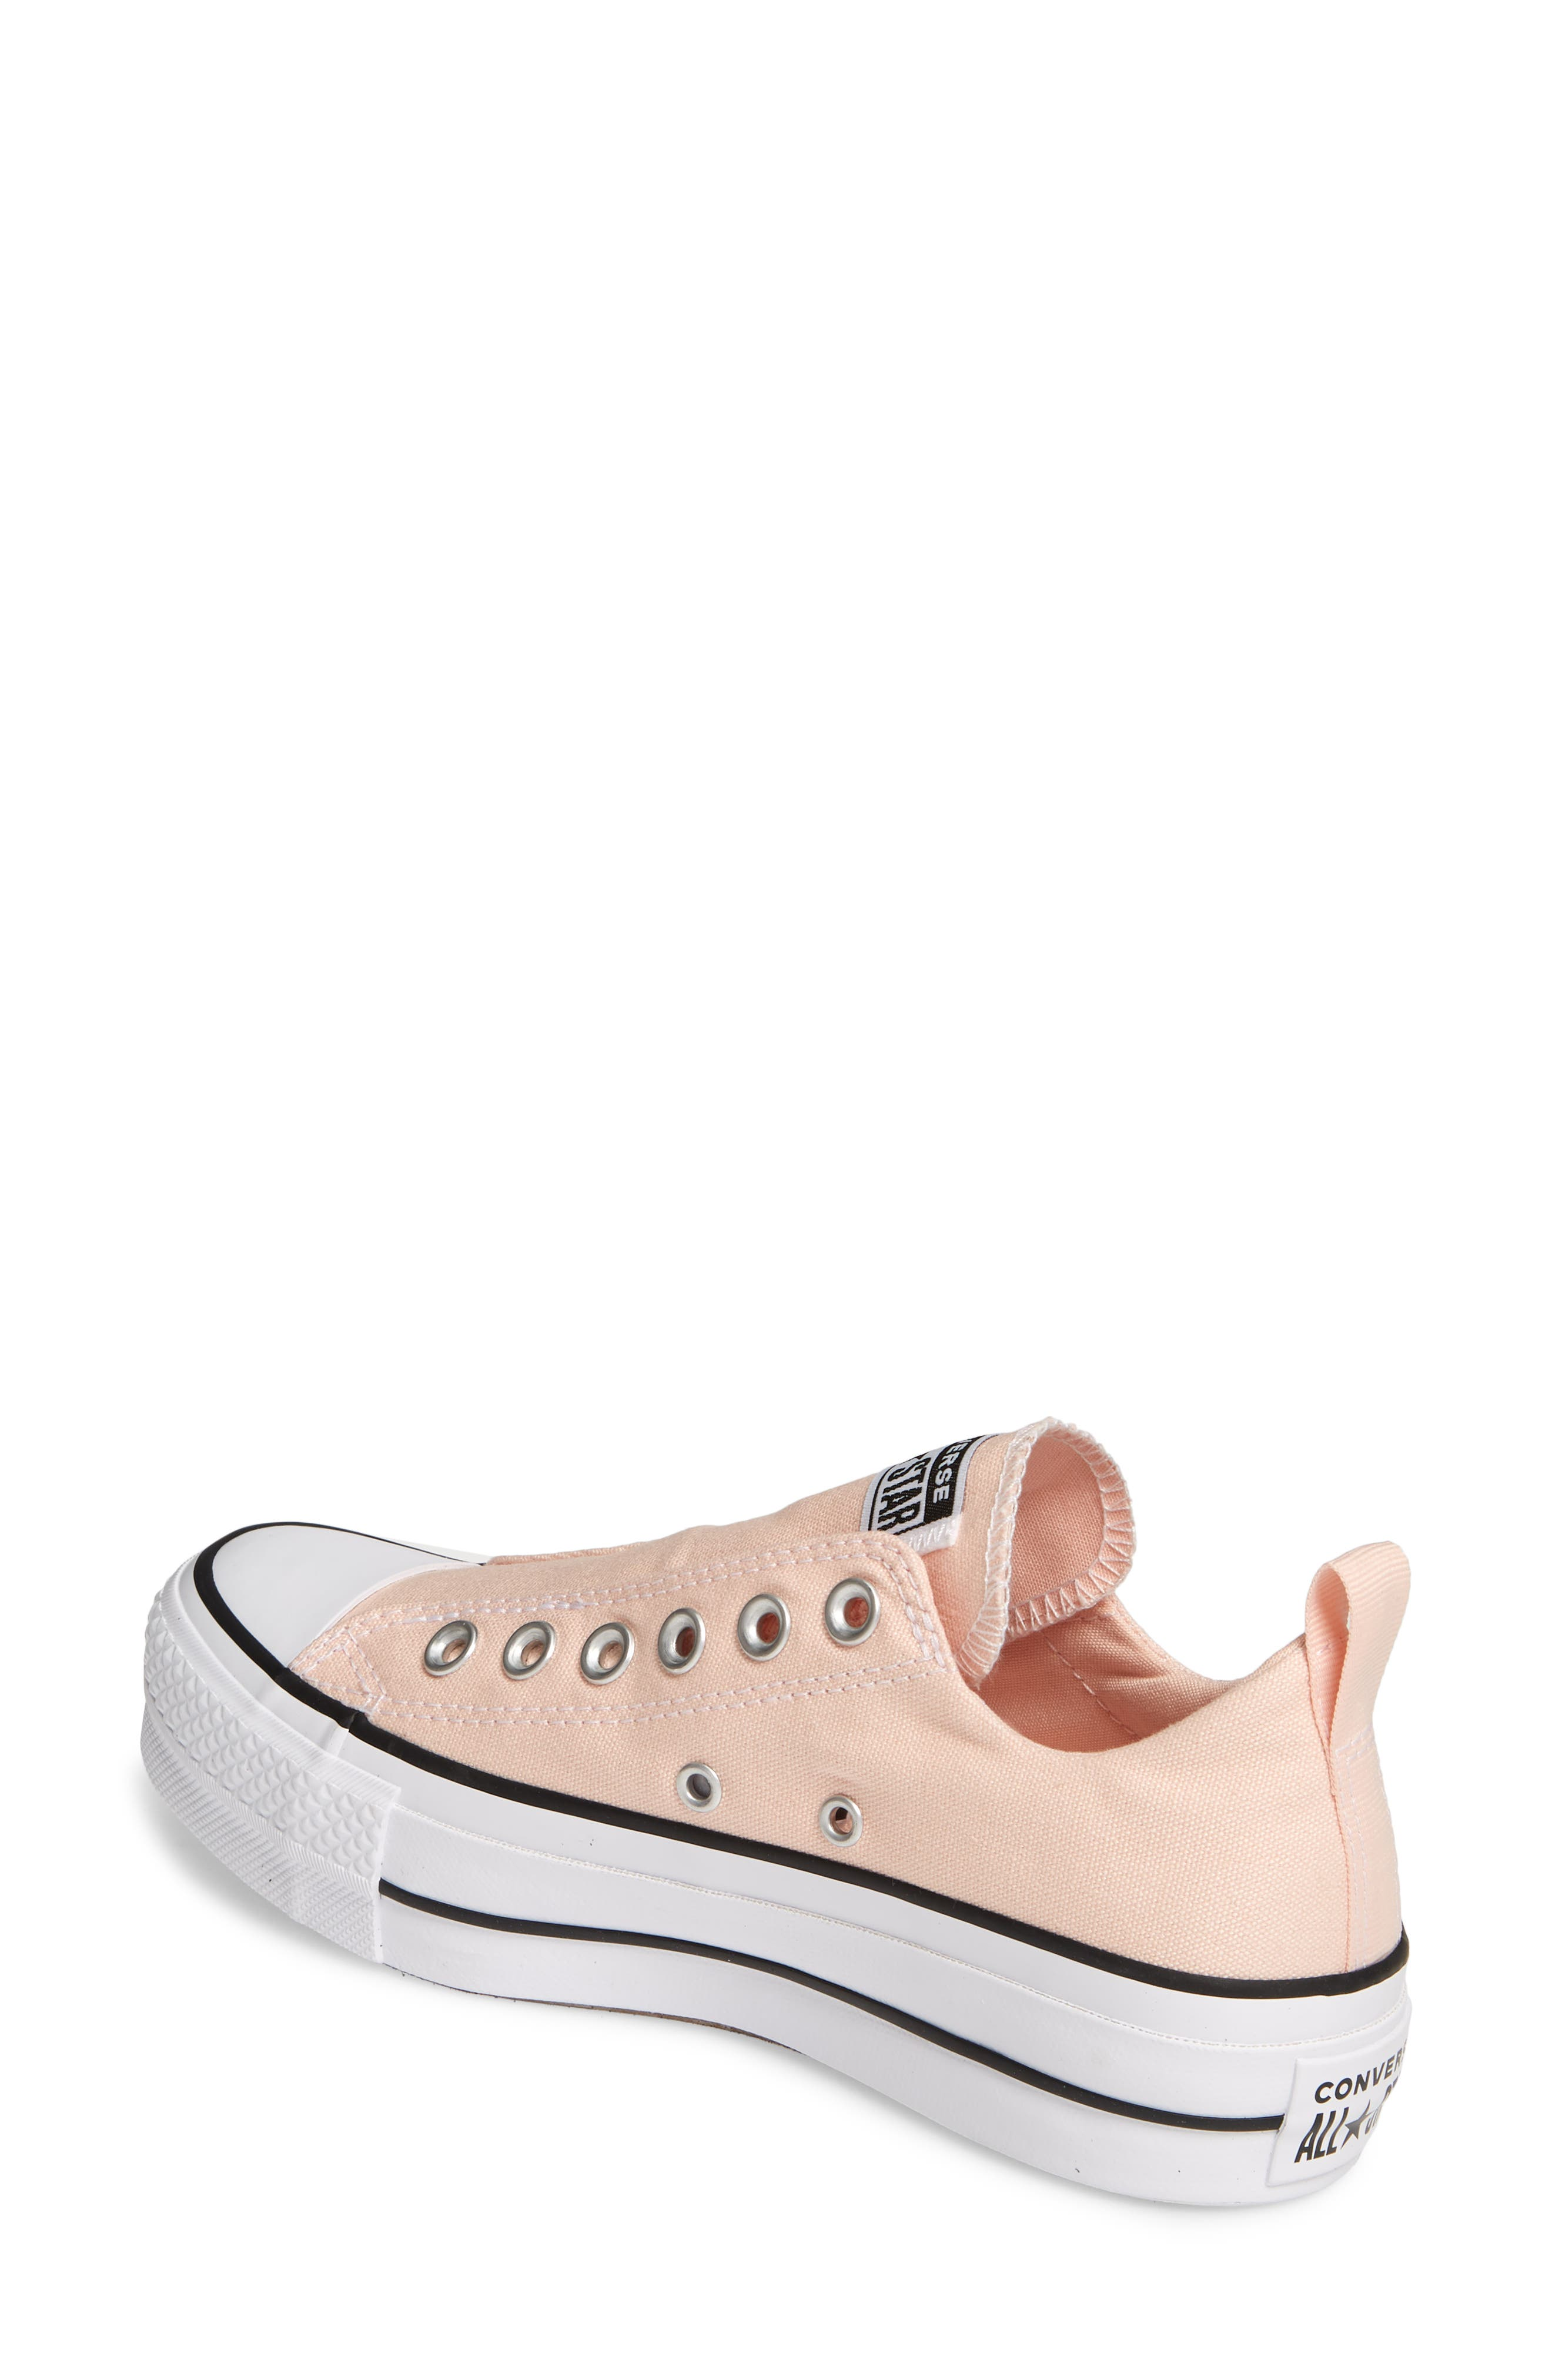 CONVERSE, Chuck Taylor<sup>®</sup> All Star<sup>®</sup> Lift Slip-On Sneaker, Alternate thumbnail 2, color, WASHED CORAL/ WHITE/ BLACK